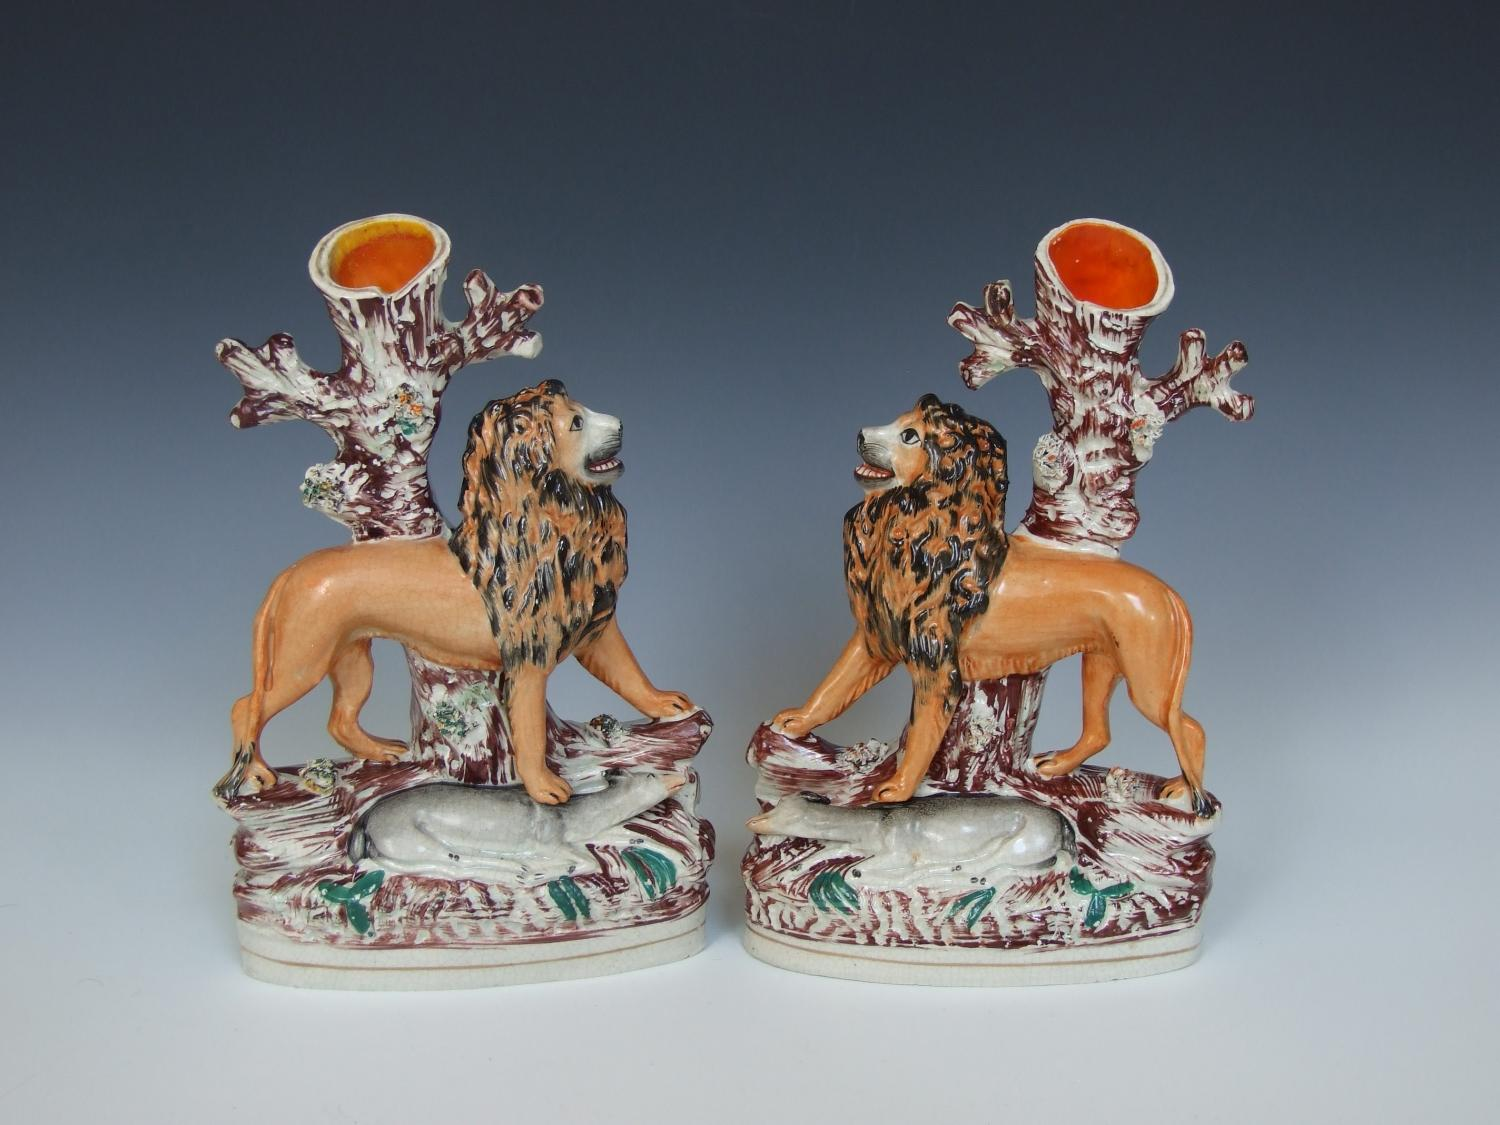 Rare pair of Staffordshire lion spill vases